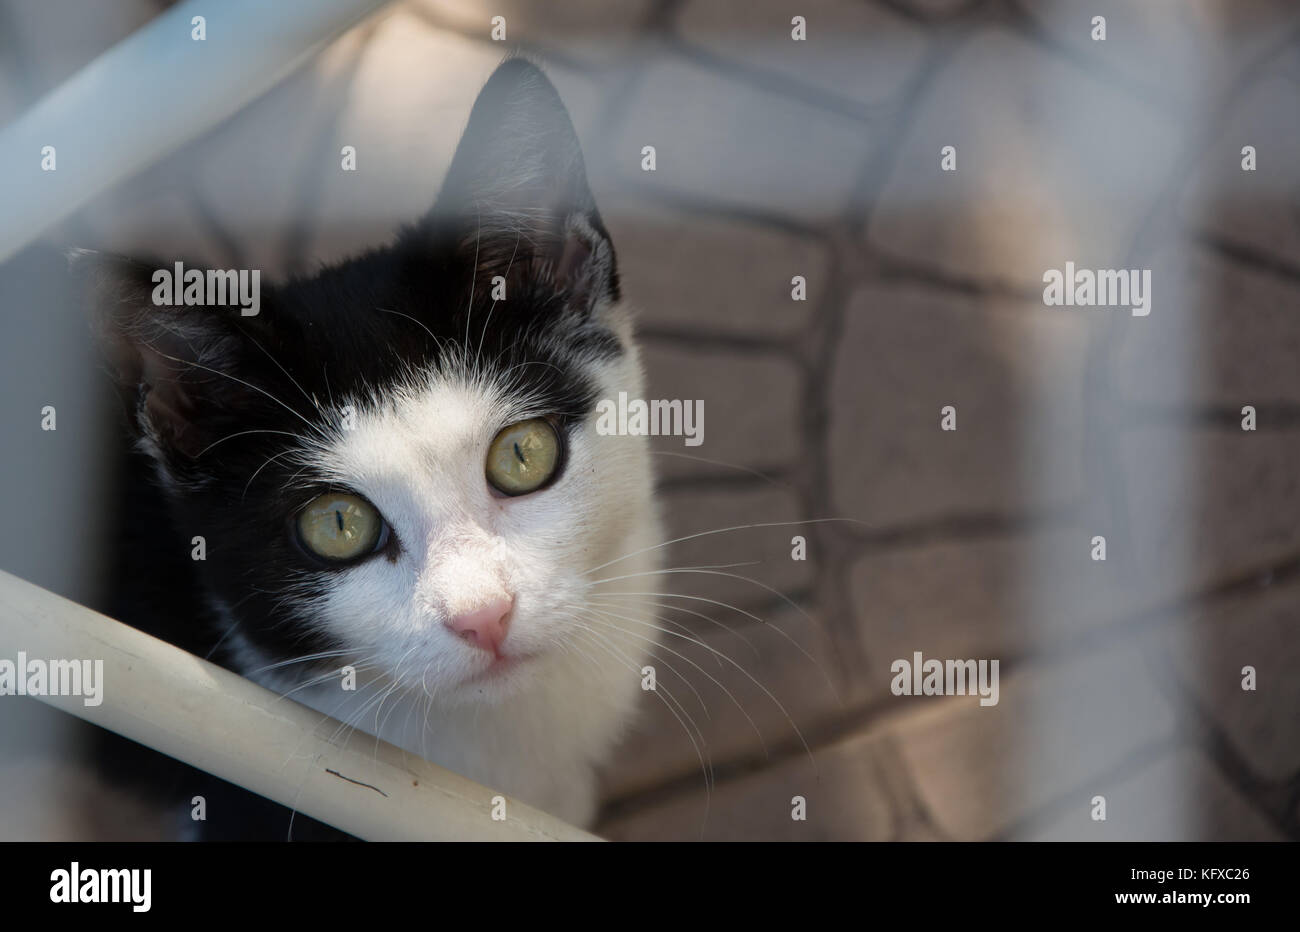 Closeup of a face of young black and white kitten - looking up in the camera - Stock Image